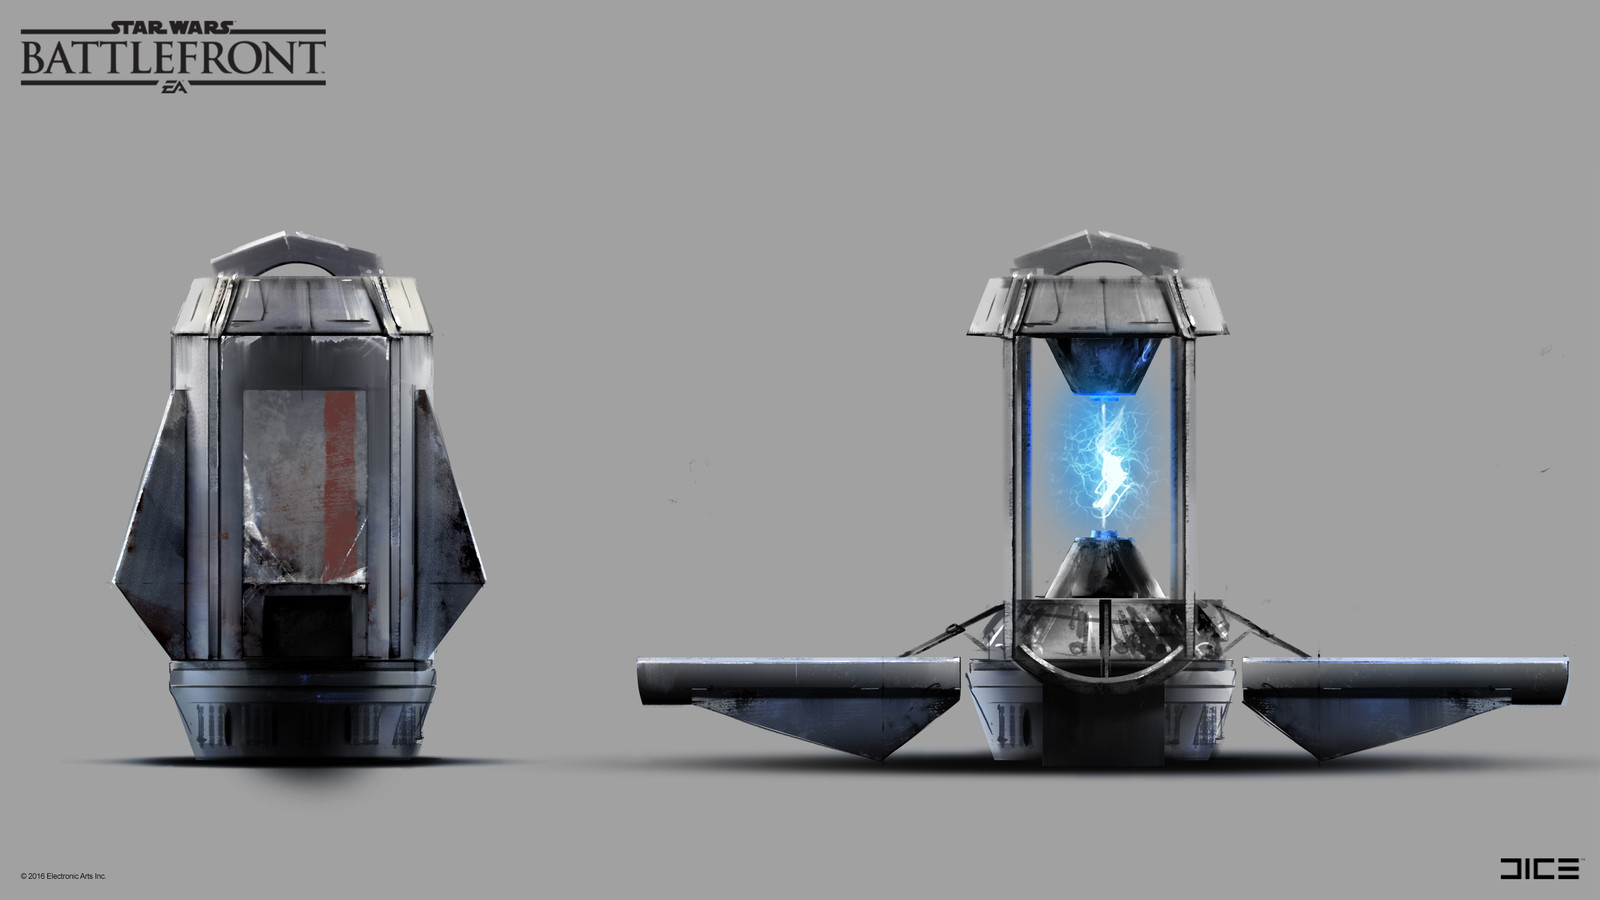 Stationary Shield Concept Art for the 2015 Star Wars Battlefront game. (2014)